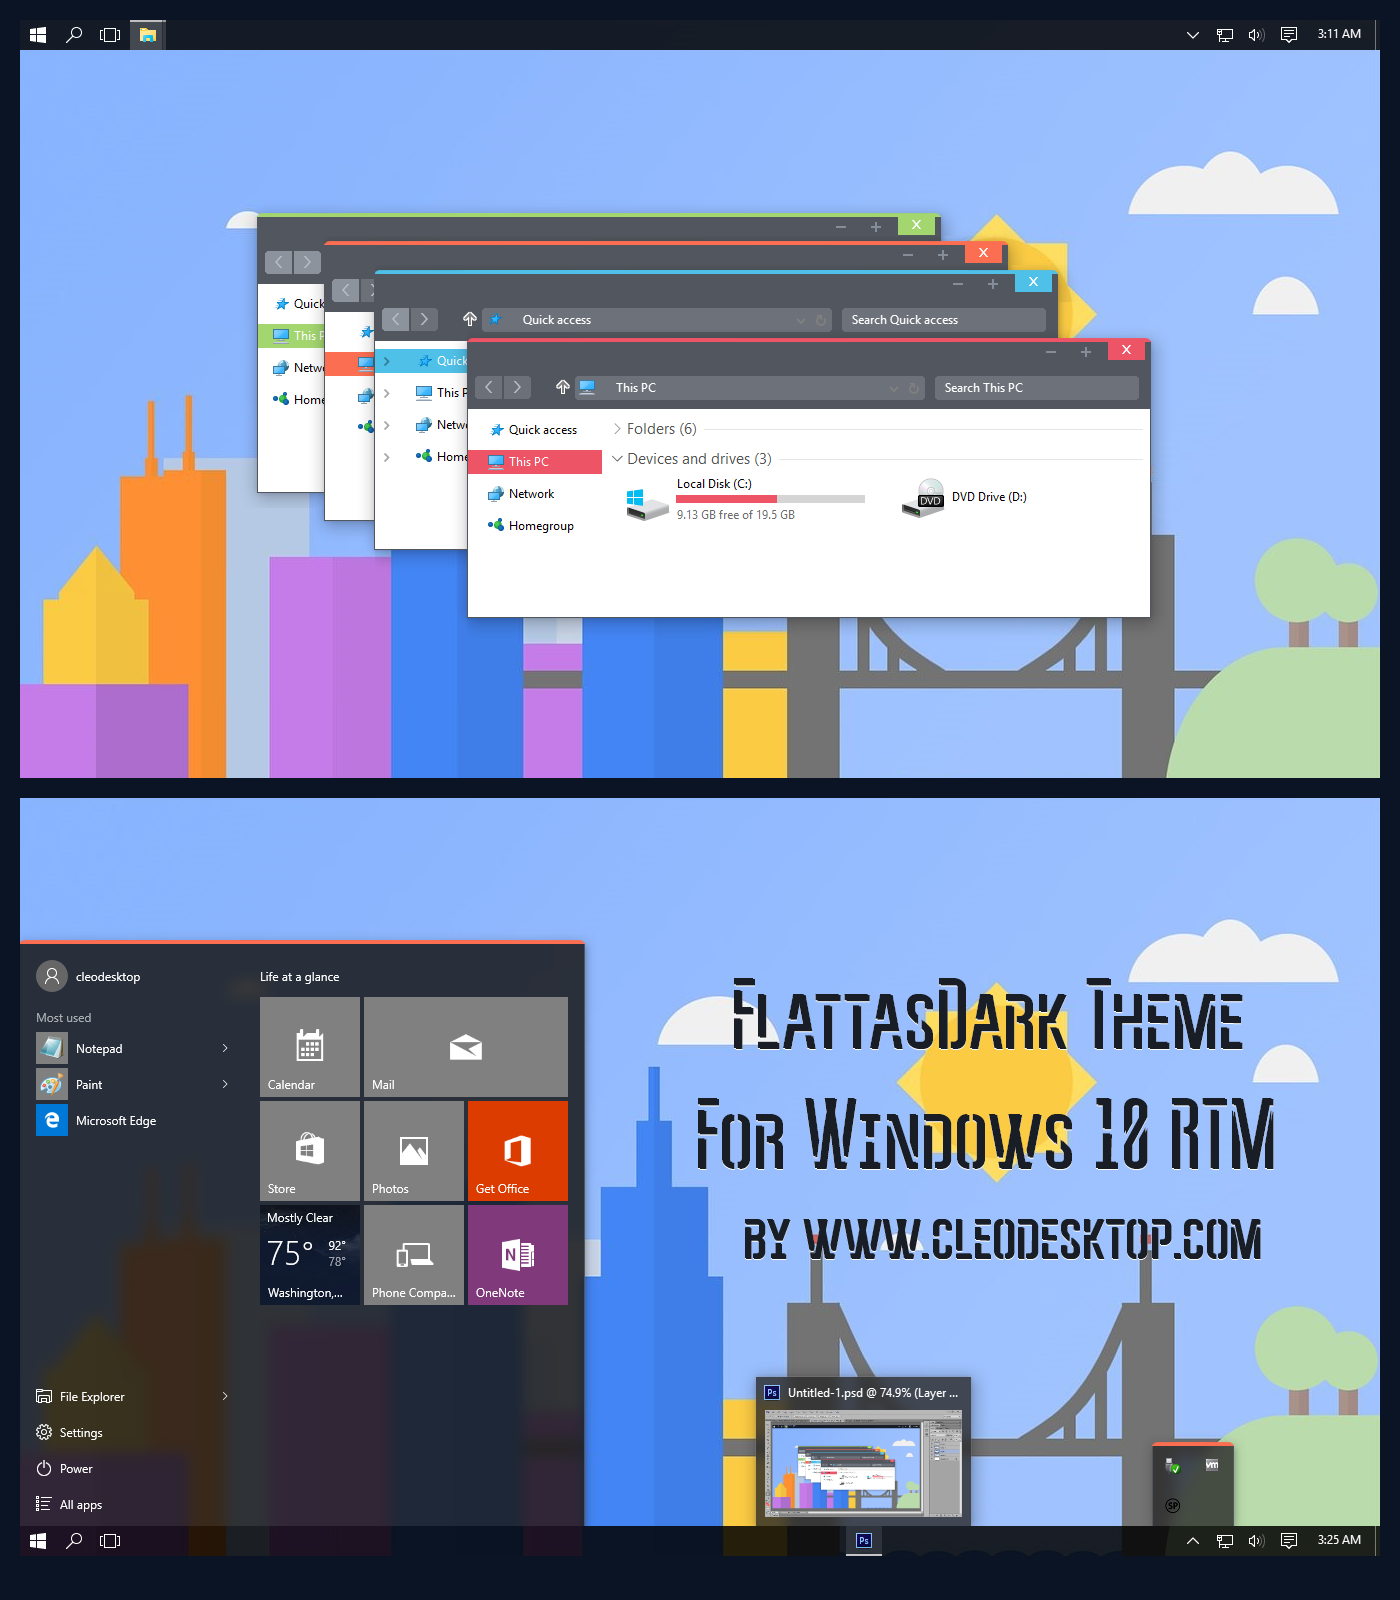 FlattasDark Theme For Windows 10 RTM